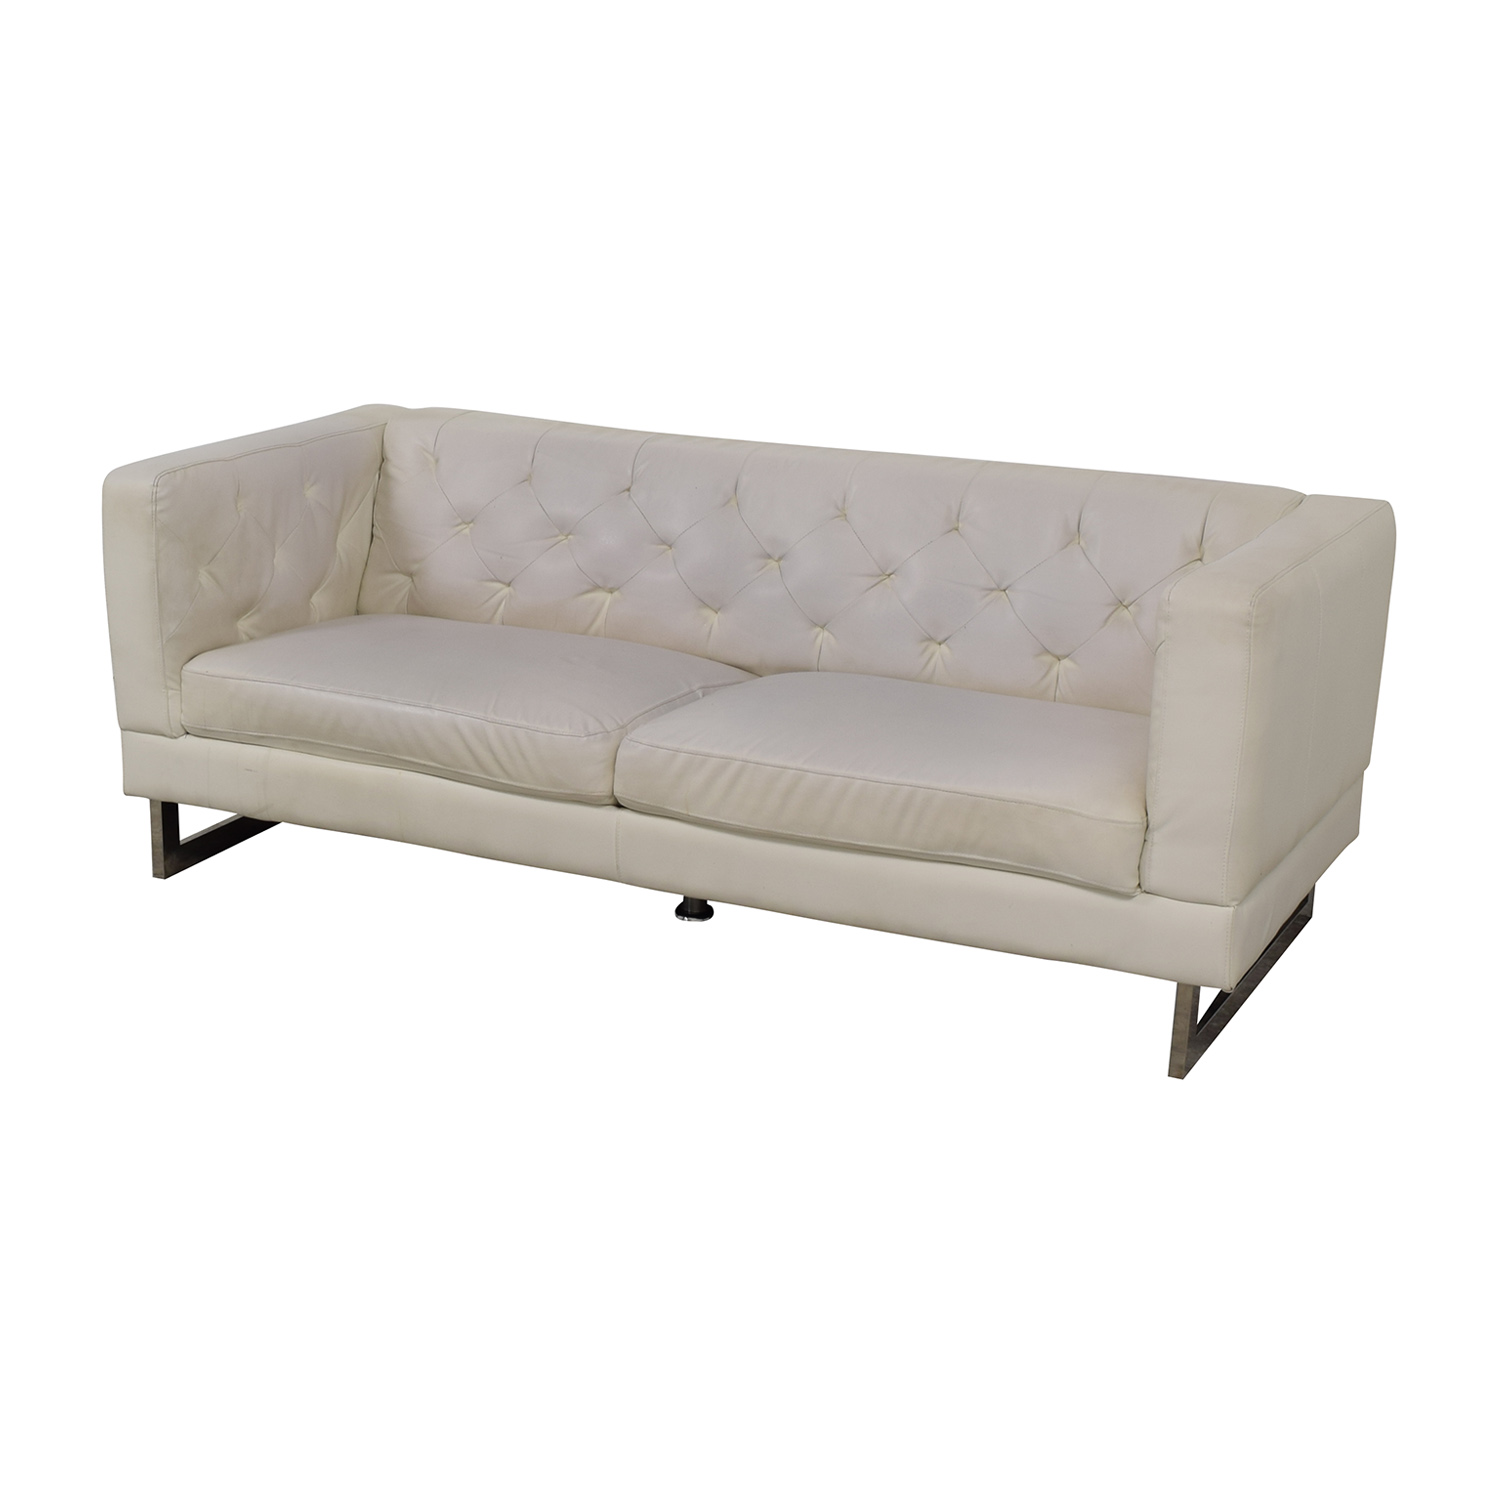 90 Off Pier 1 Pier 1 White Tufted Two Cushion Couch Sofas